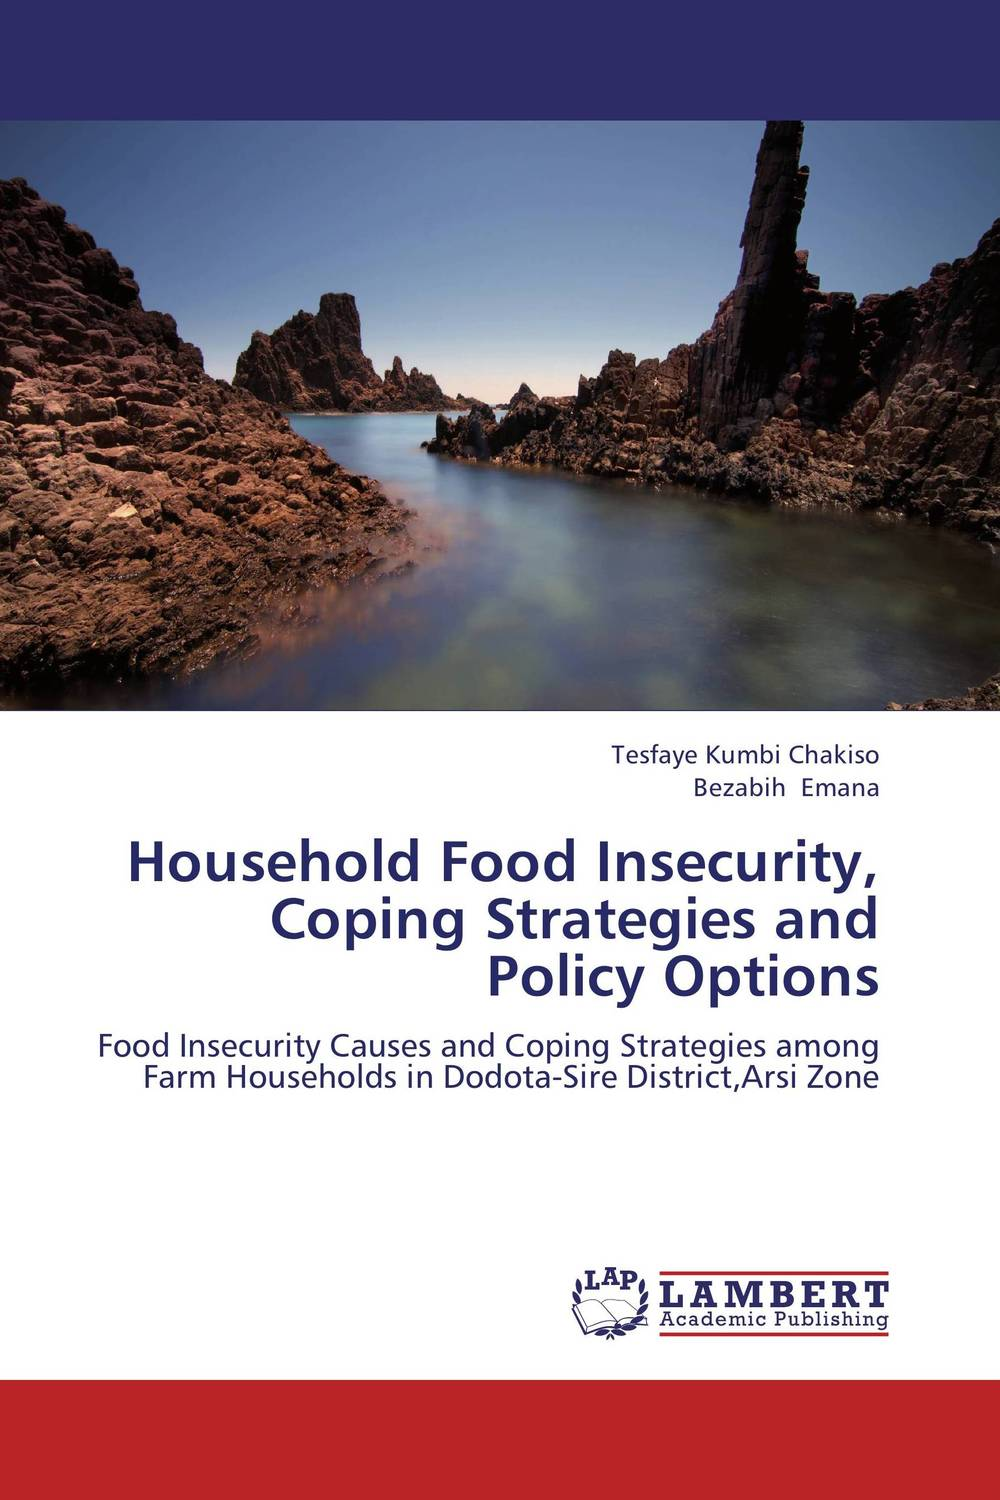 Household Food Insecurity, Coping Strategies and Policy Options agatha daniel and charles olungah women s indigenous knowledge in household food security